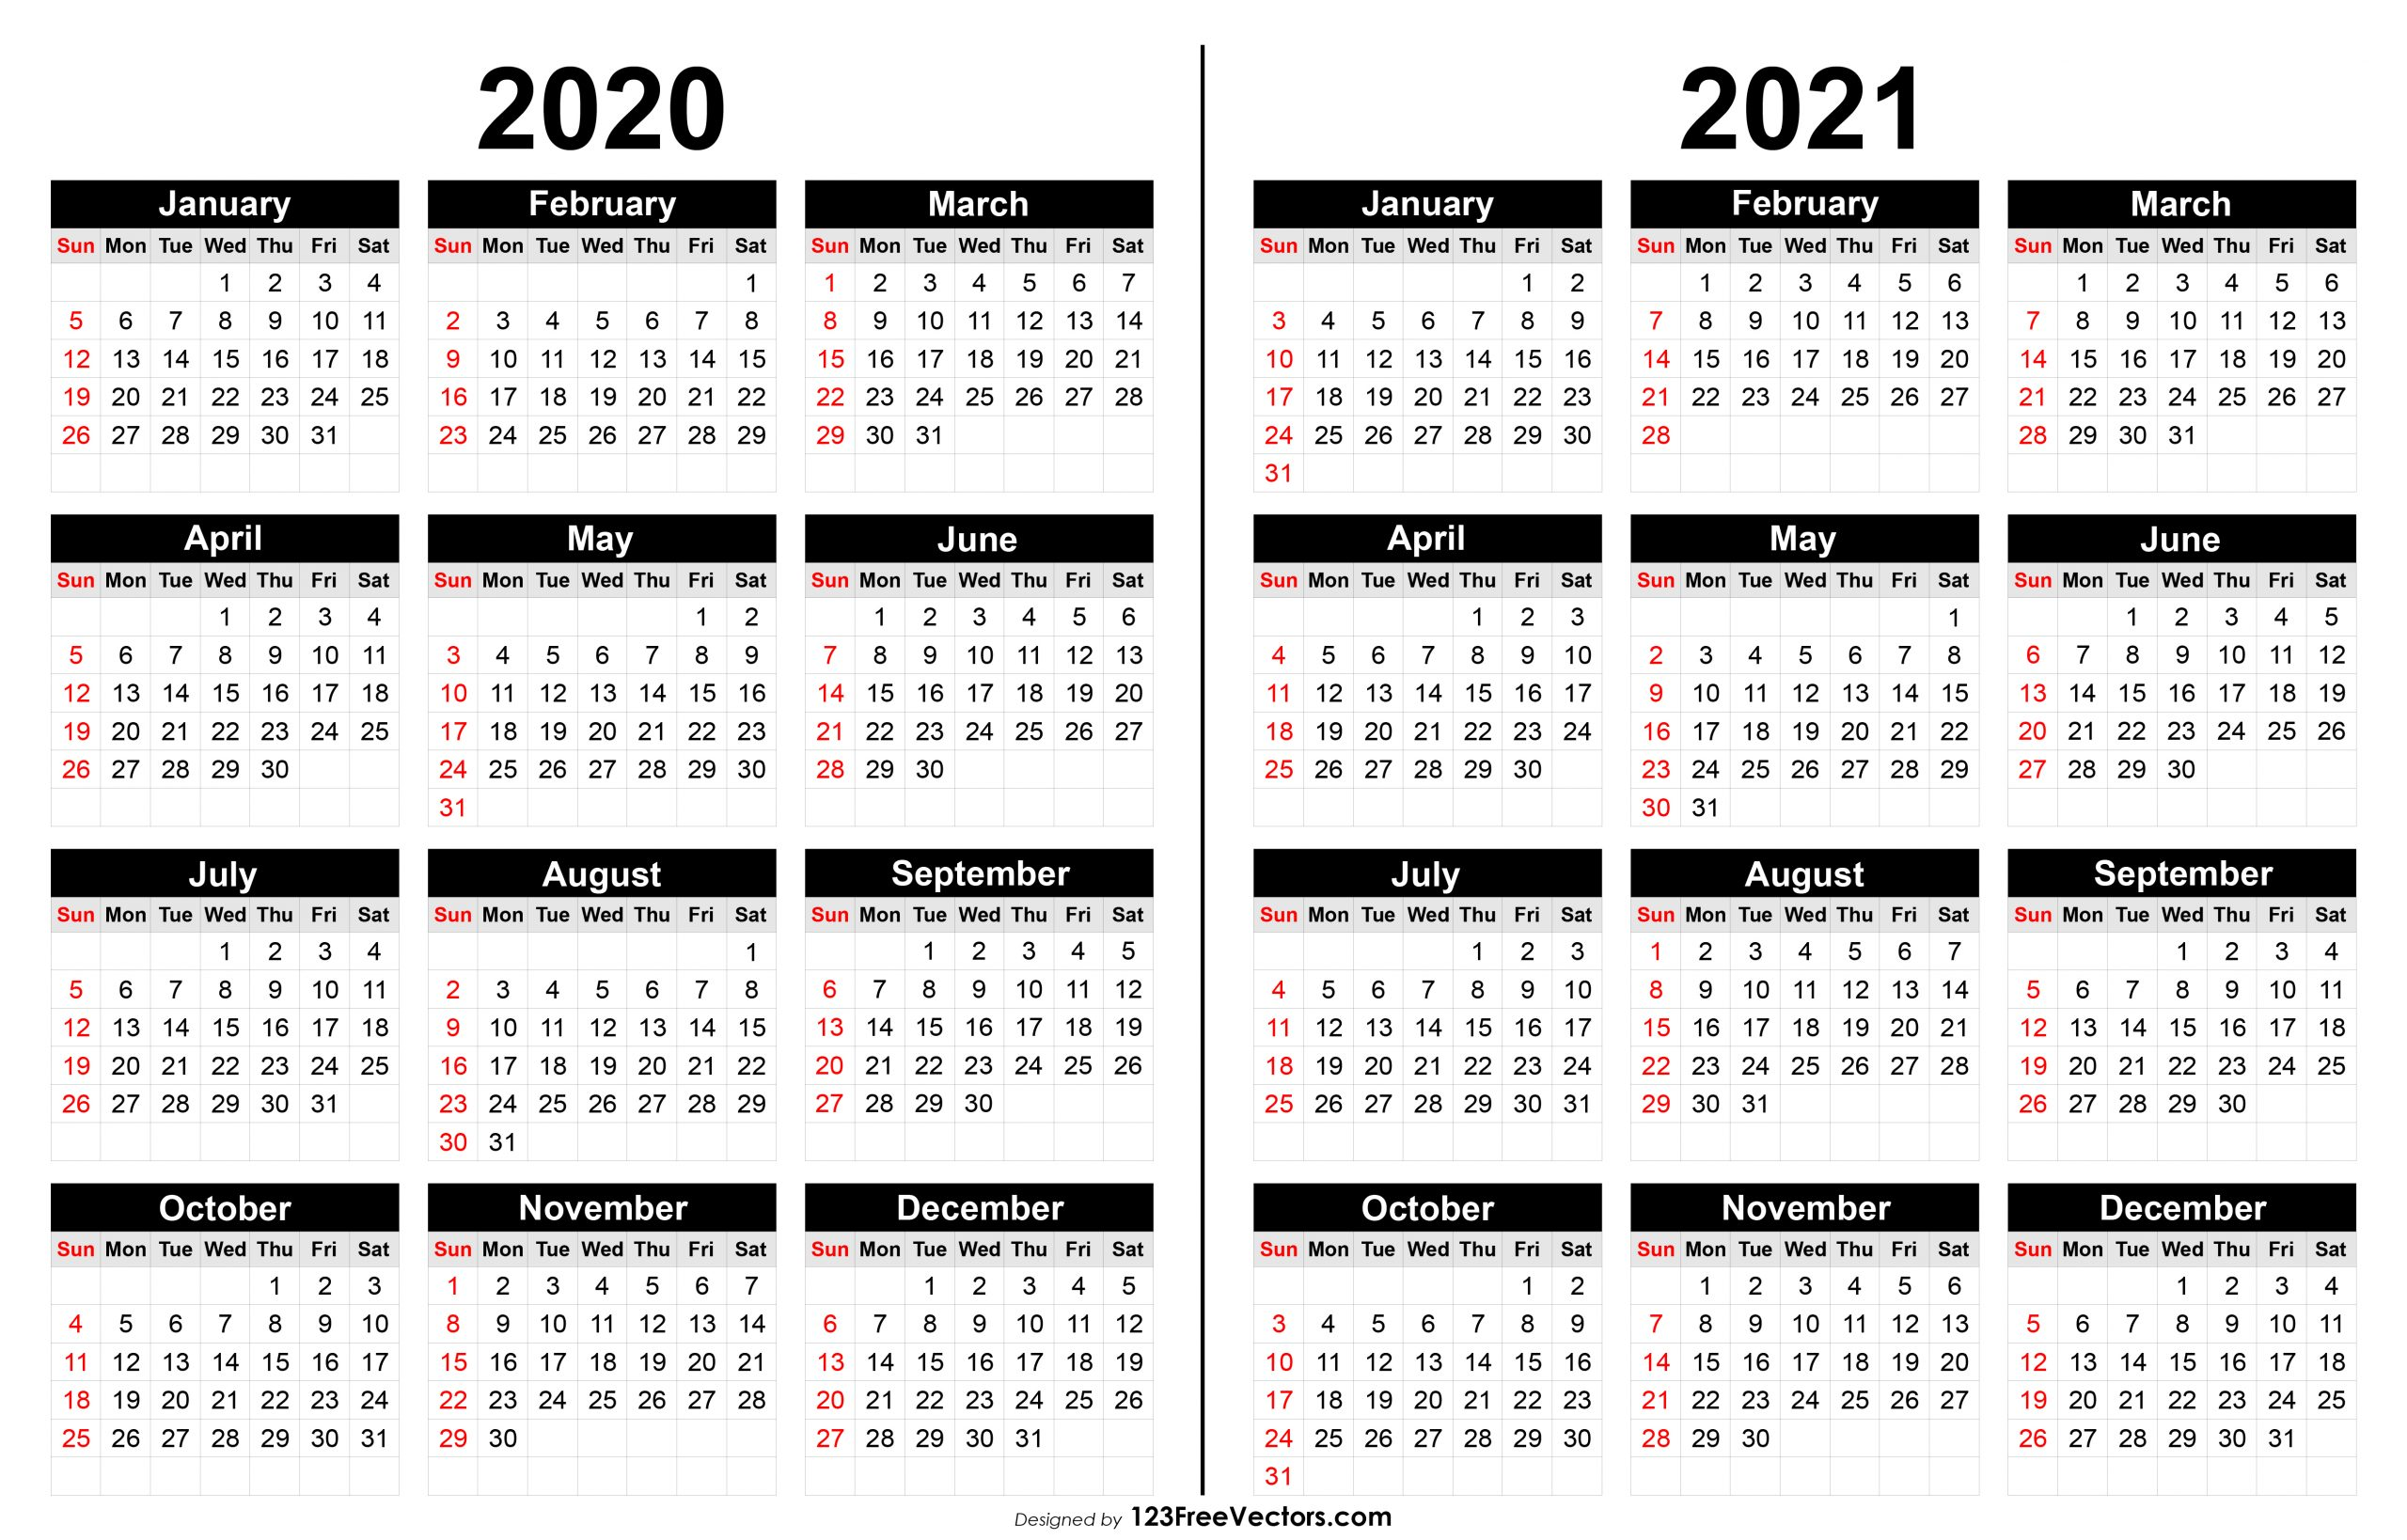 210+ 2020 Calendar Vectors | Download Free Vector Art